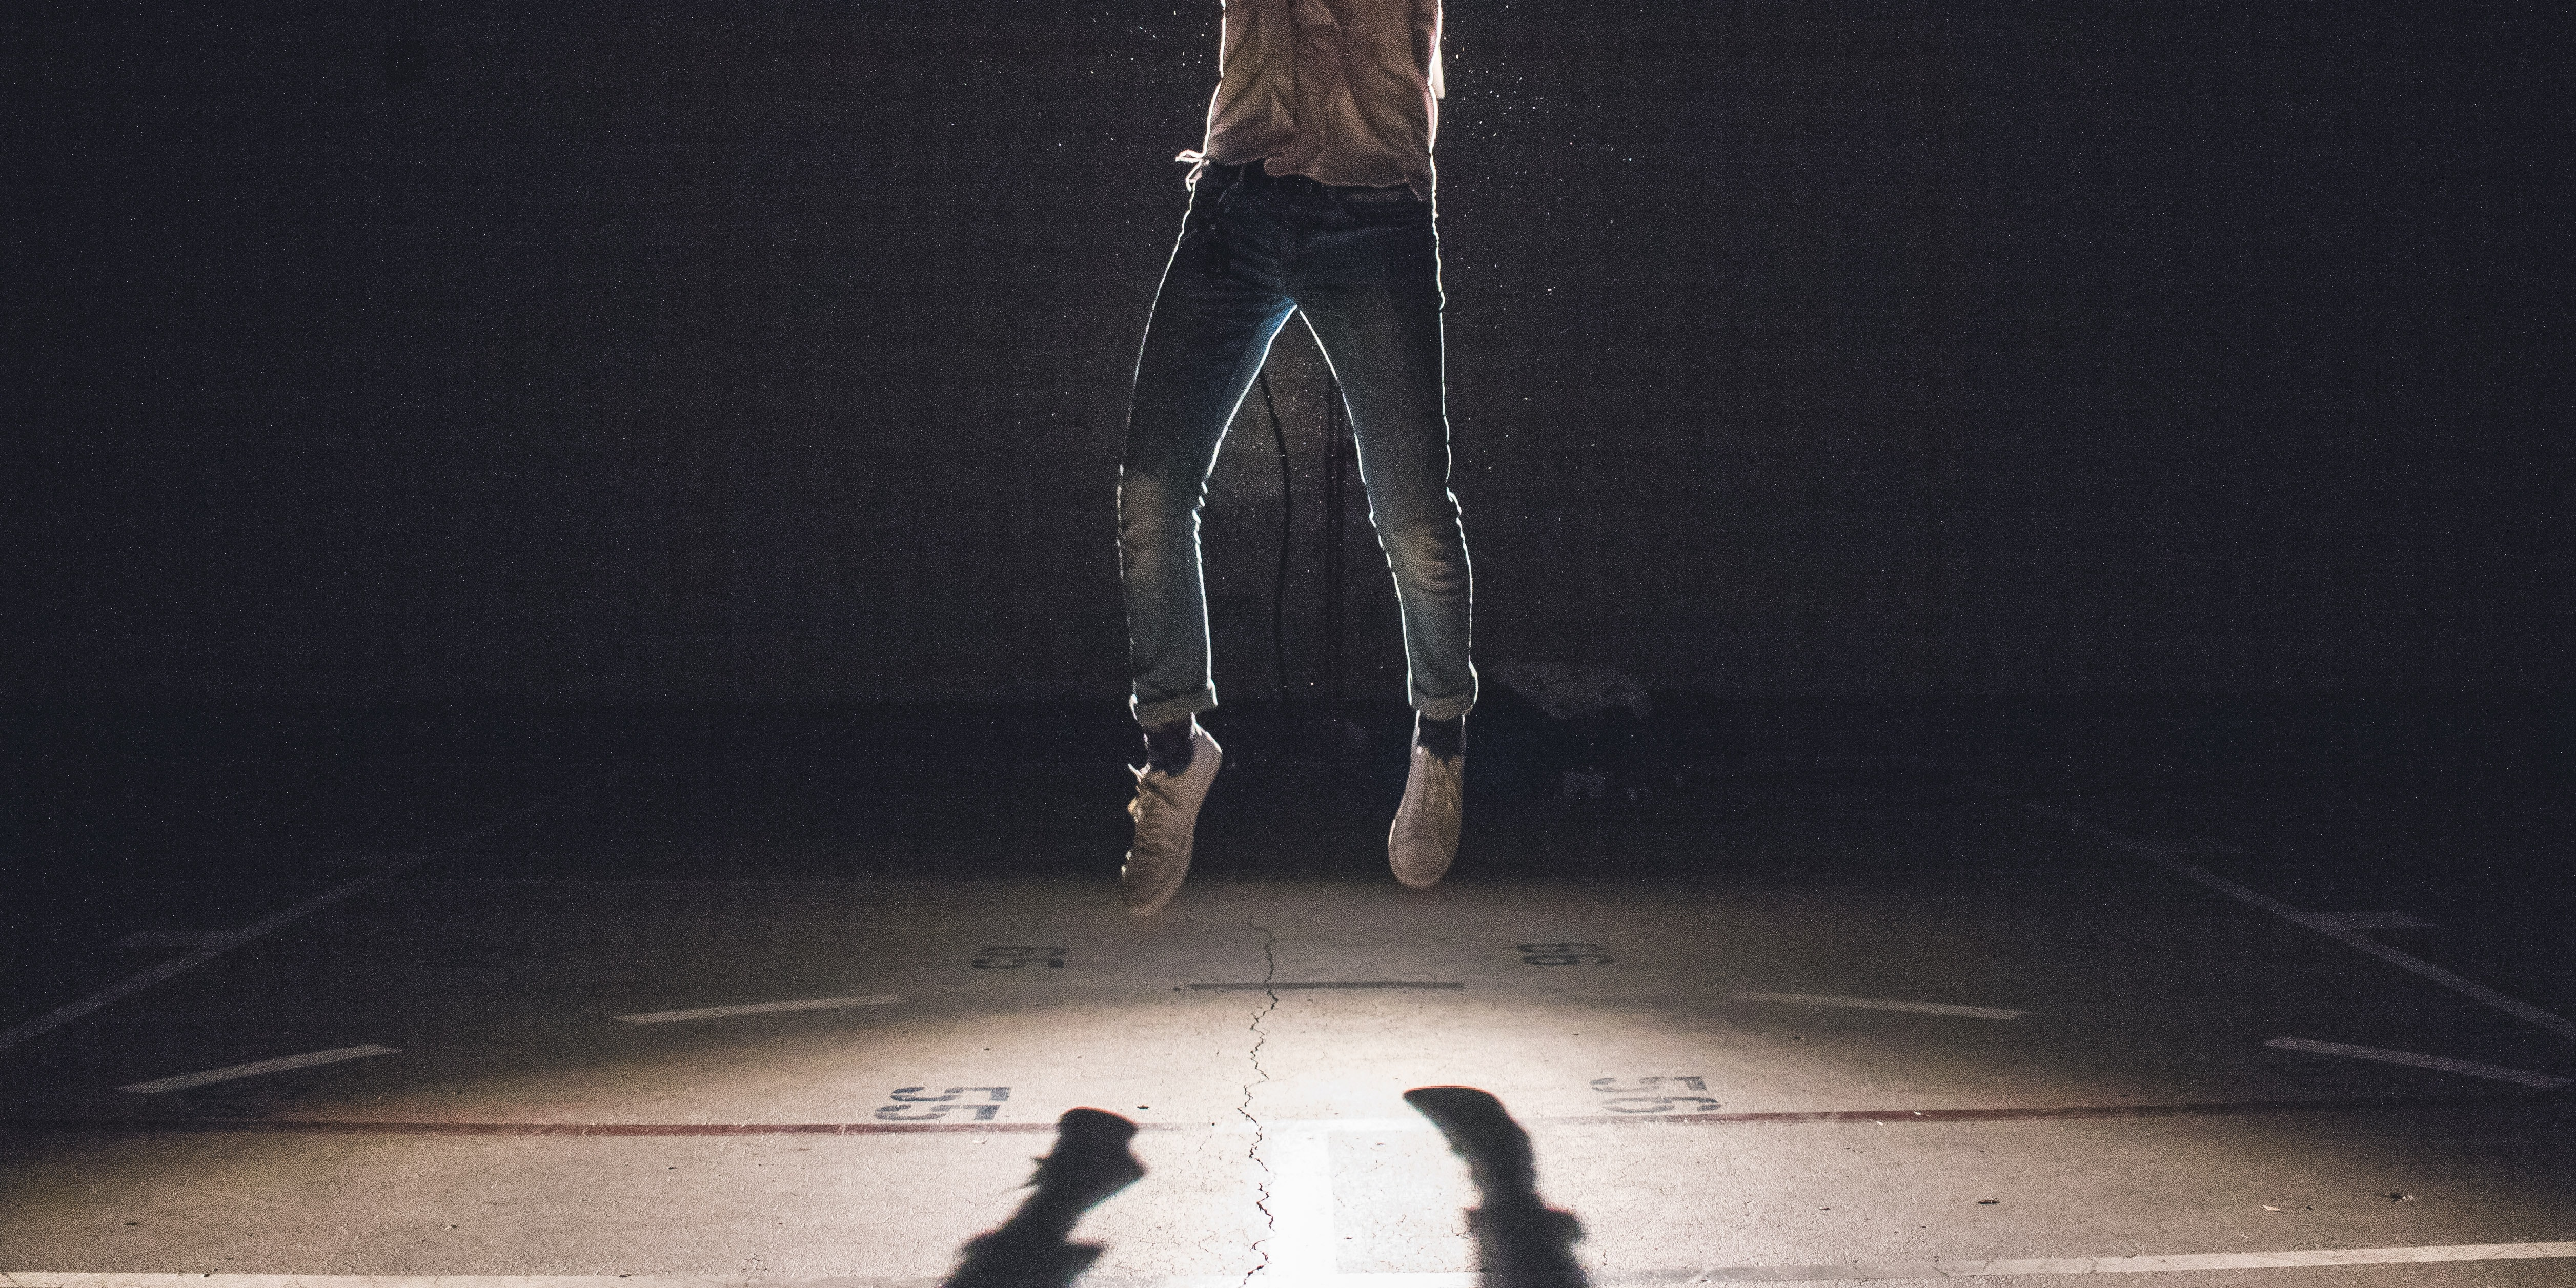 Person in jeans and sneakers jumping off of floor with shadow below